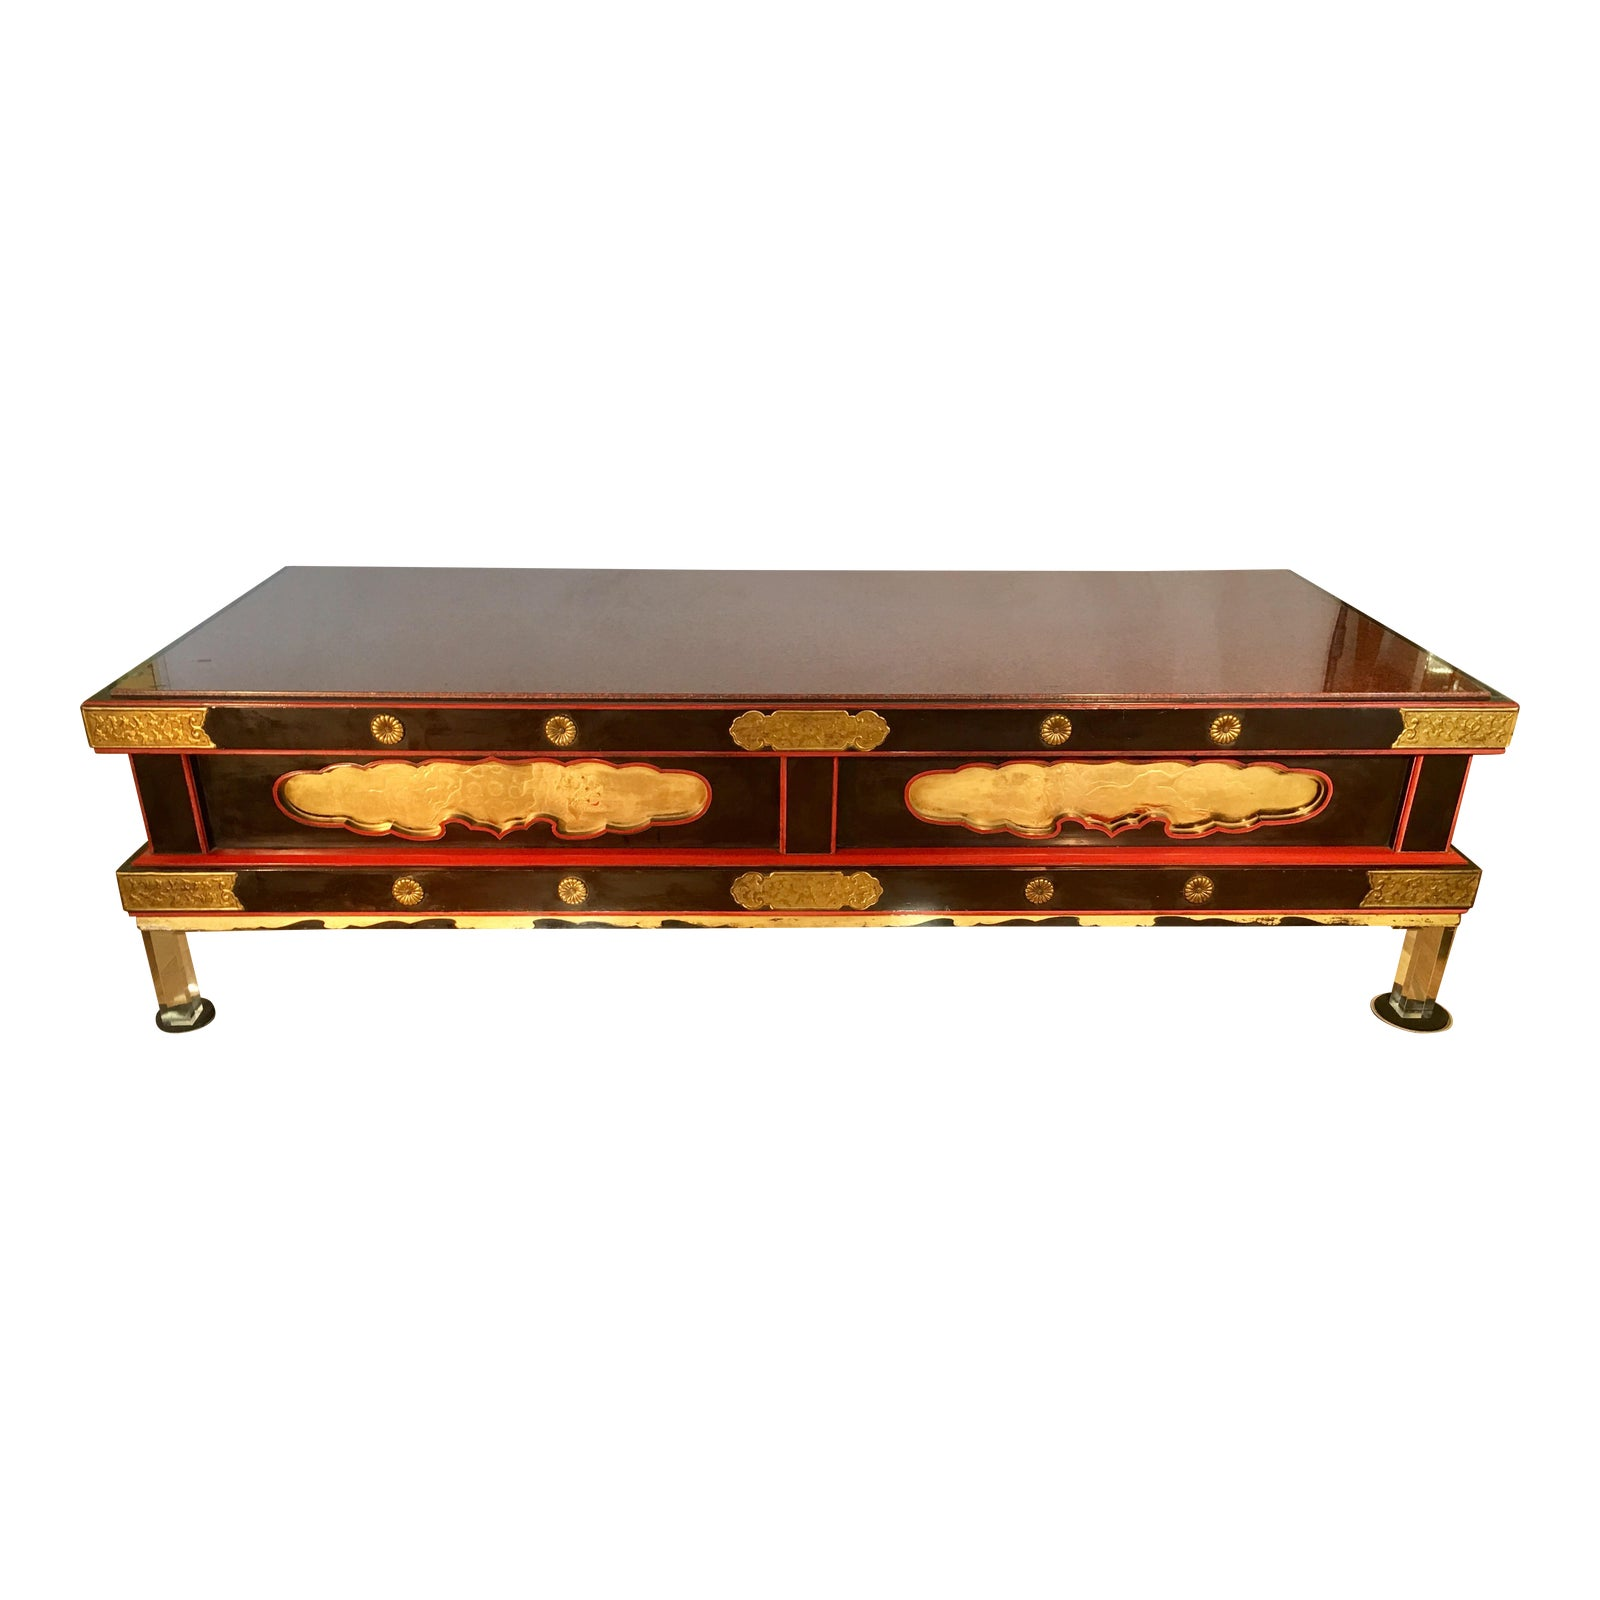 Japanese Coffee Table.Antique Japanese Coffee Table W Rouge Marble Modern Lucite Feet